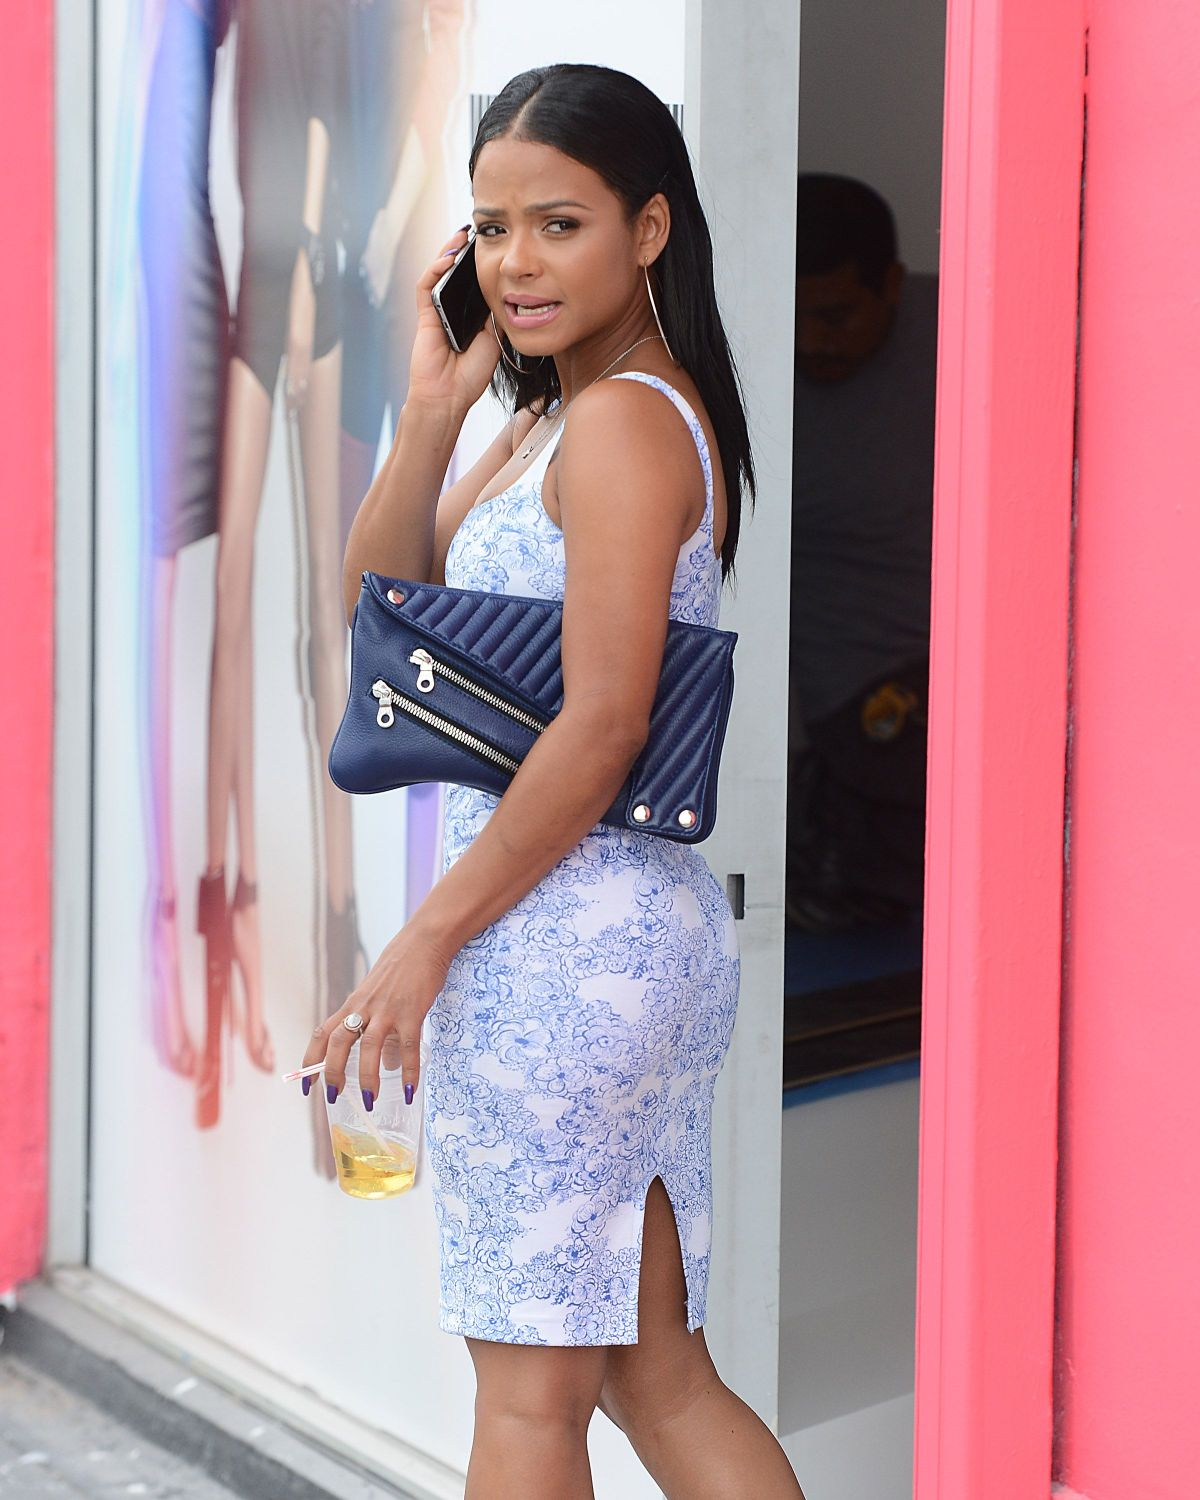 CHRISTINA MILIAN at Her We Are Pop Culture Pop Up Shop in Los Angeles 06/27/2015